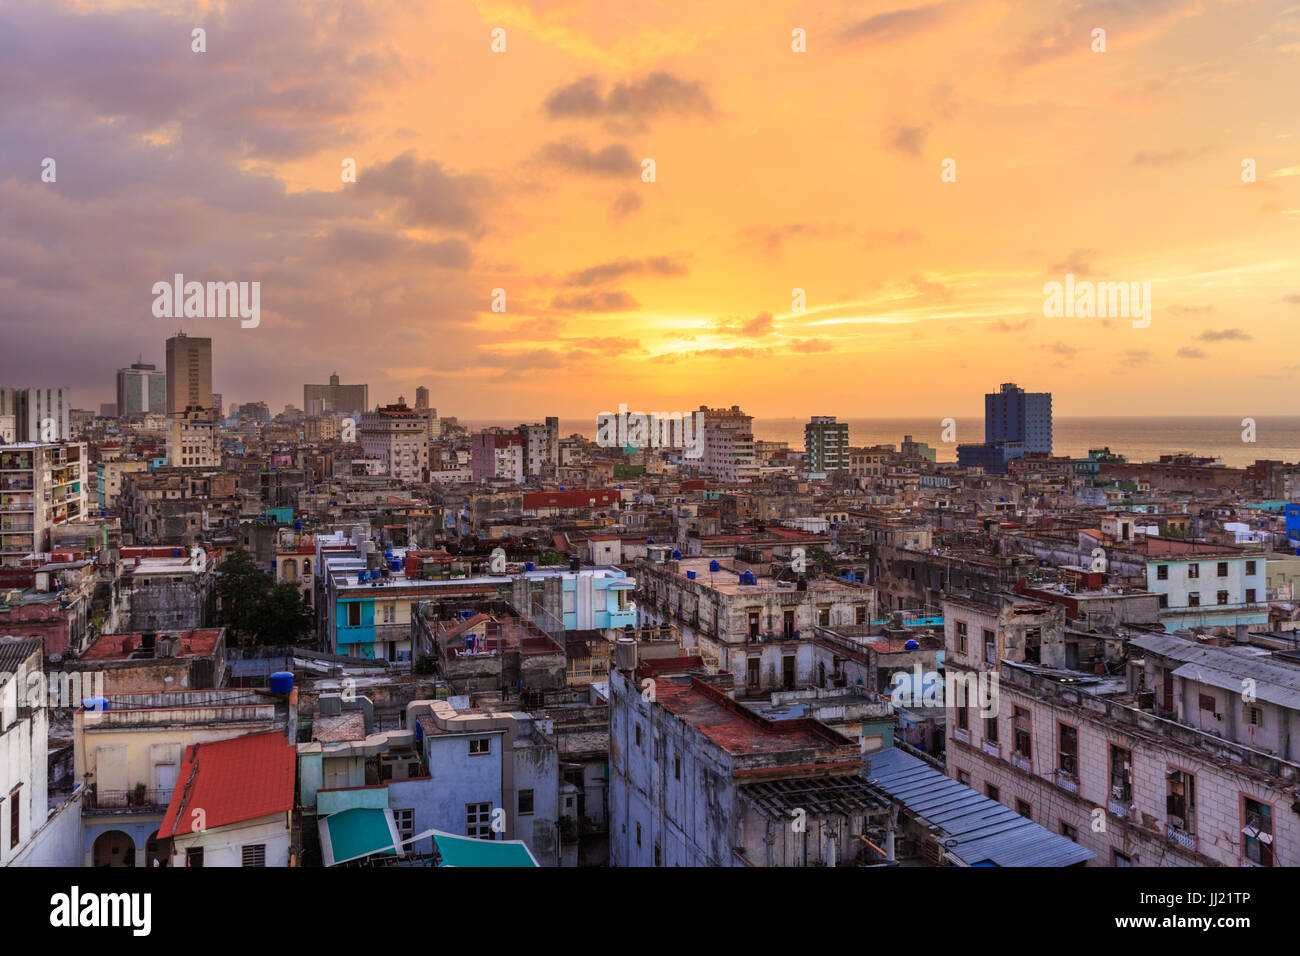 Sunset over Old Havana, La Habana Vieja from above, historic old town rooftop view, Havana, Cuba - Stock Image